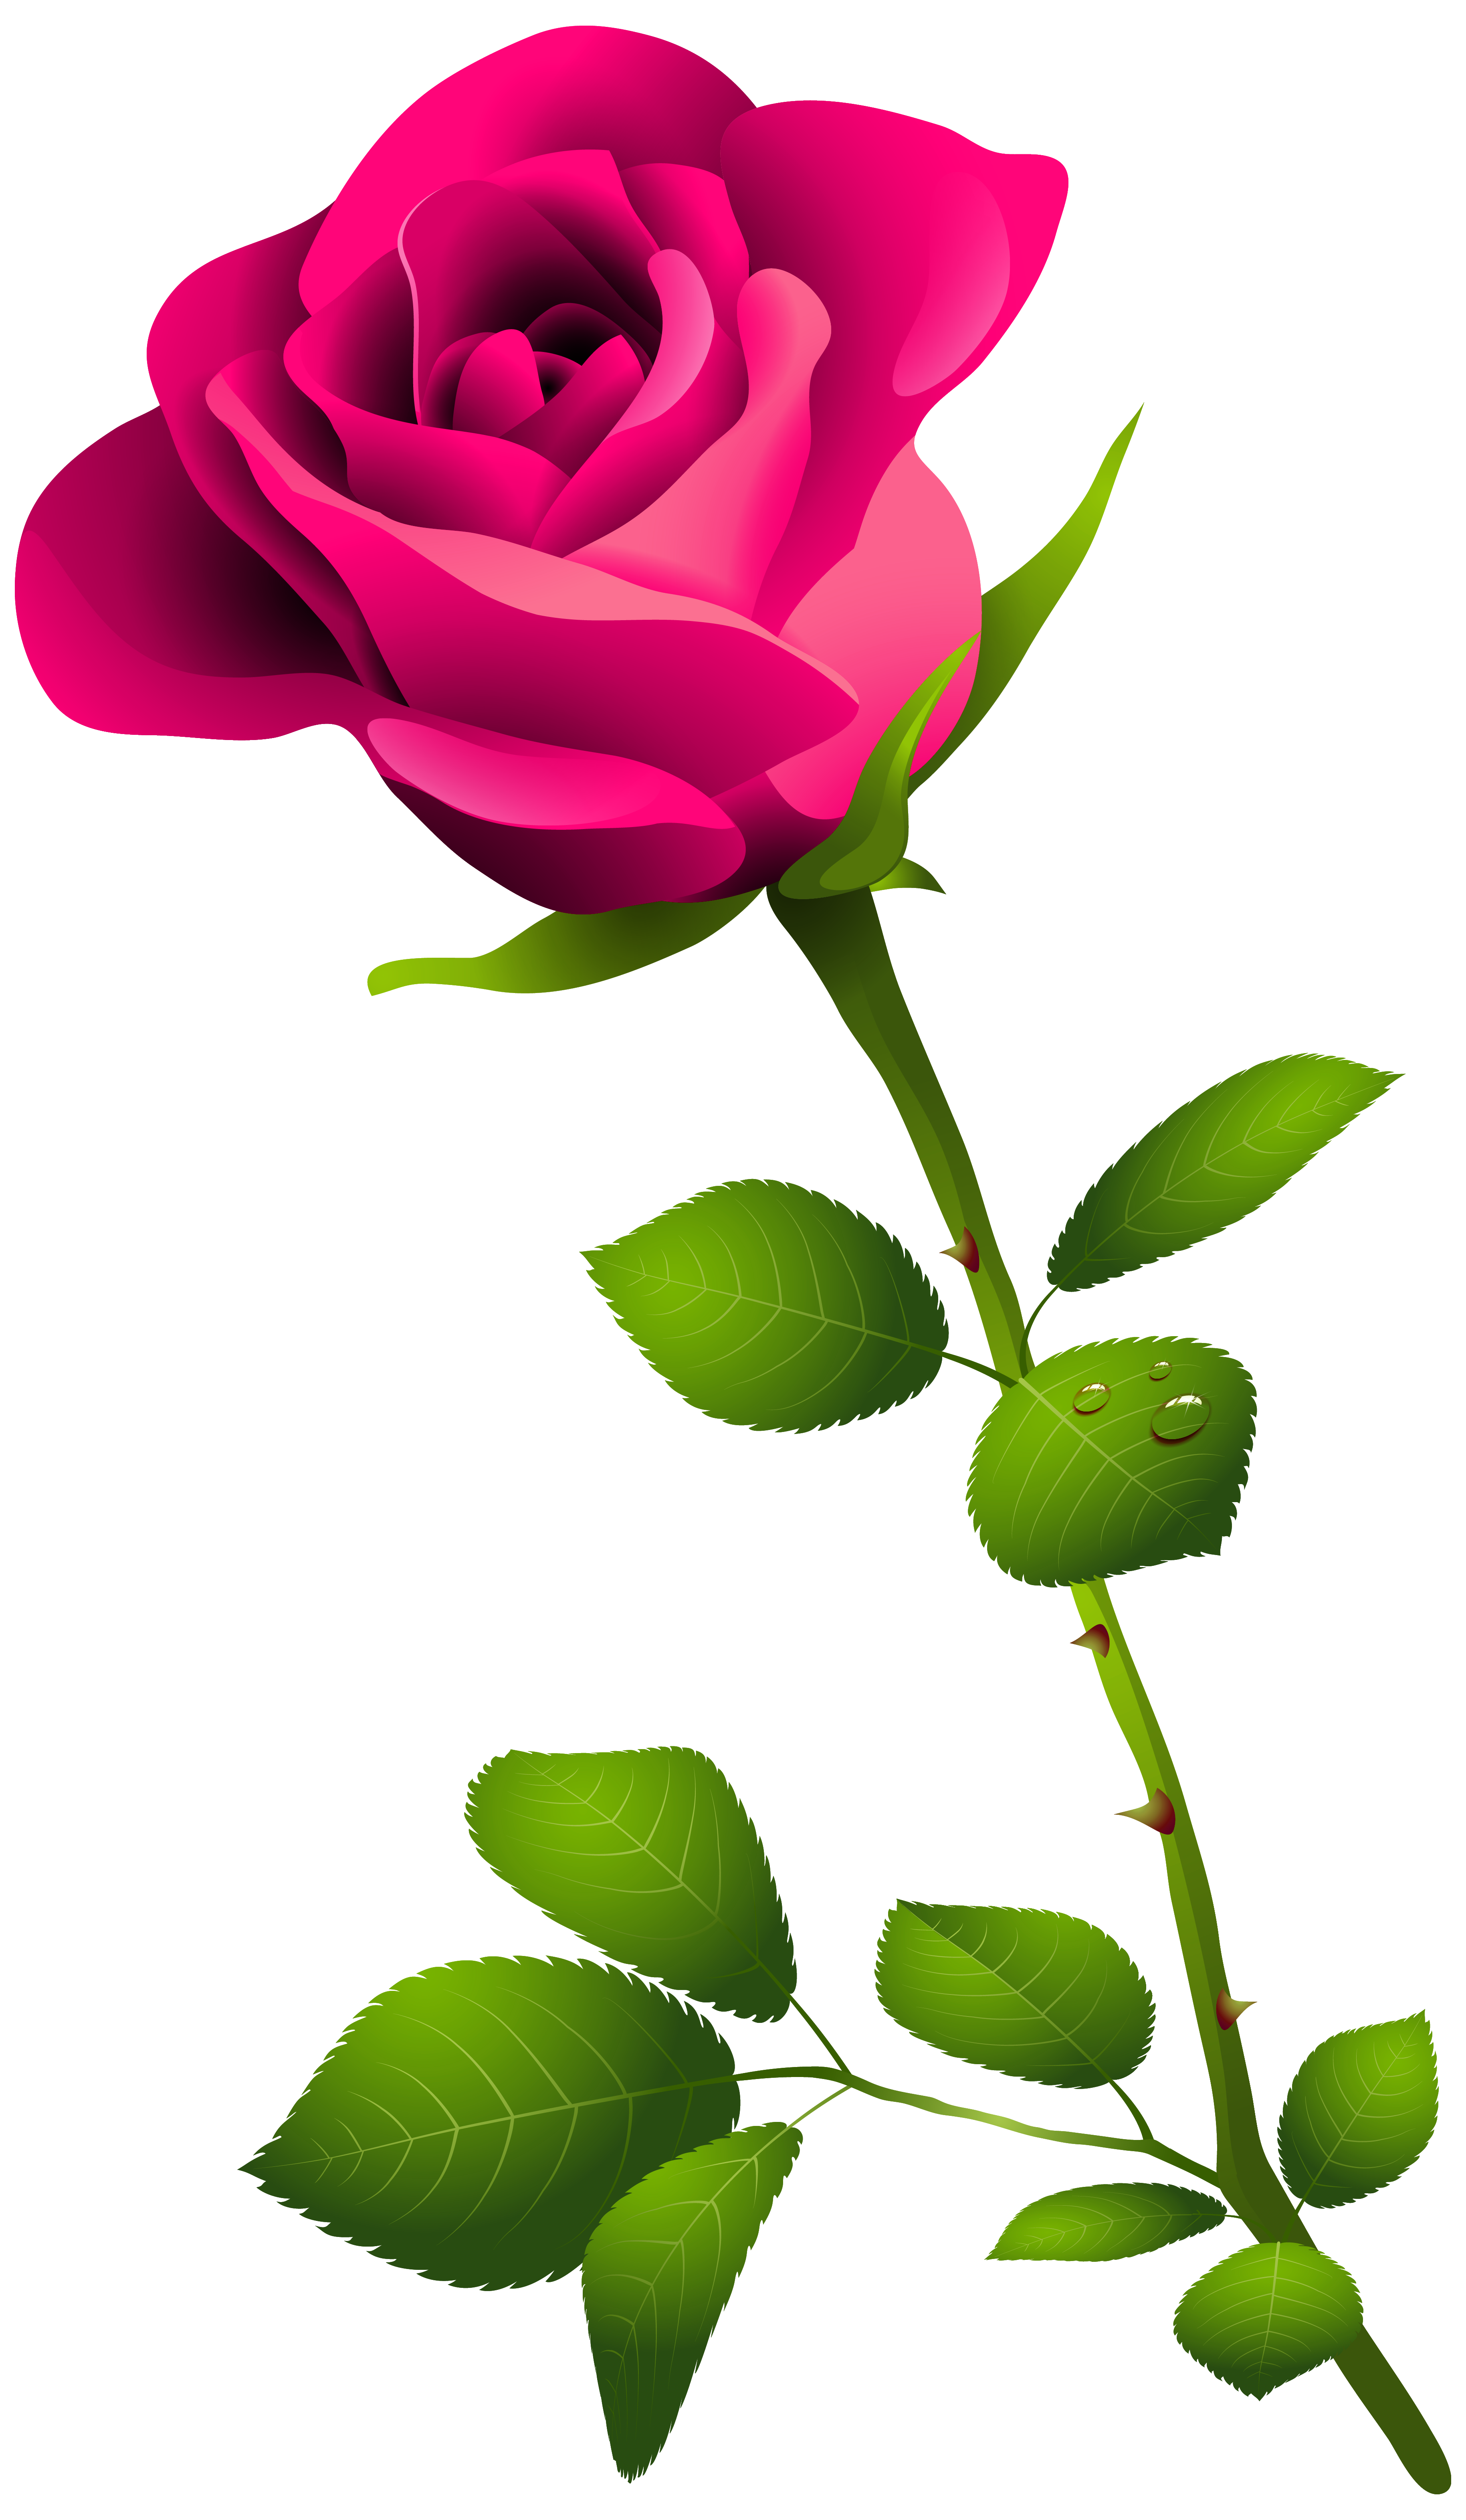 Flower clipart with stem image library library Pink Rose with Stem PNG Clipart Image | Gallery Yopriceville - High ... image library library